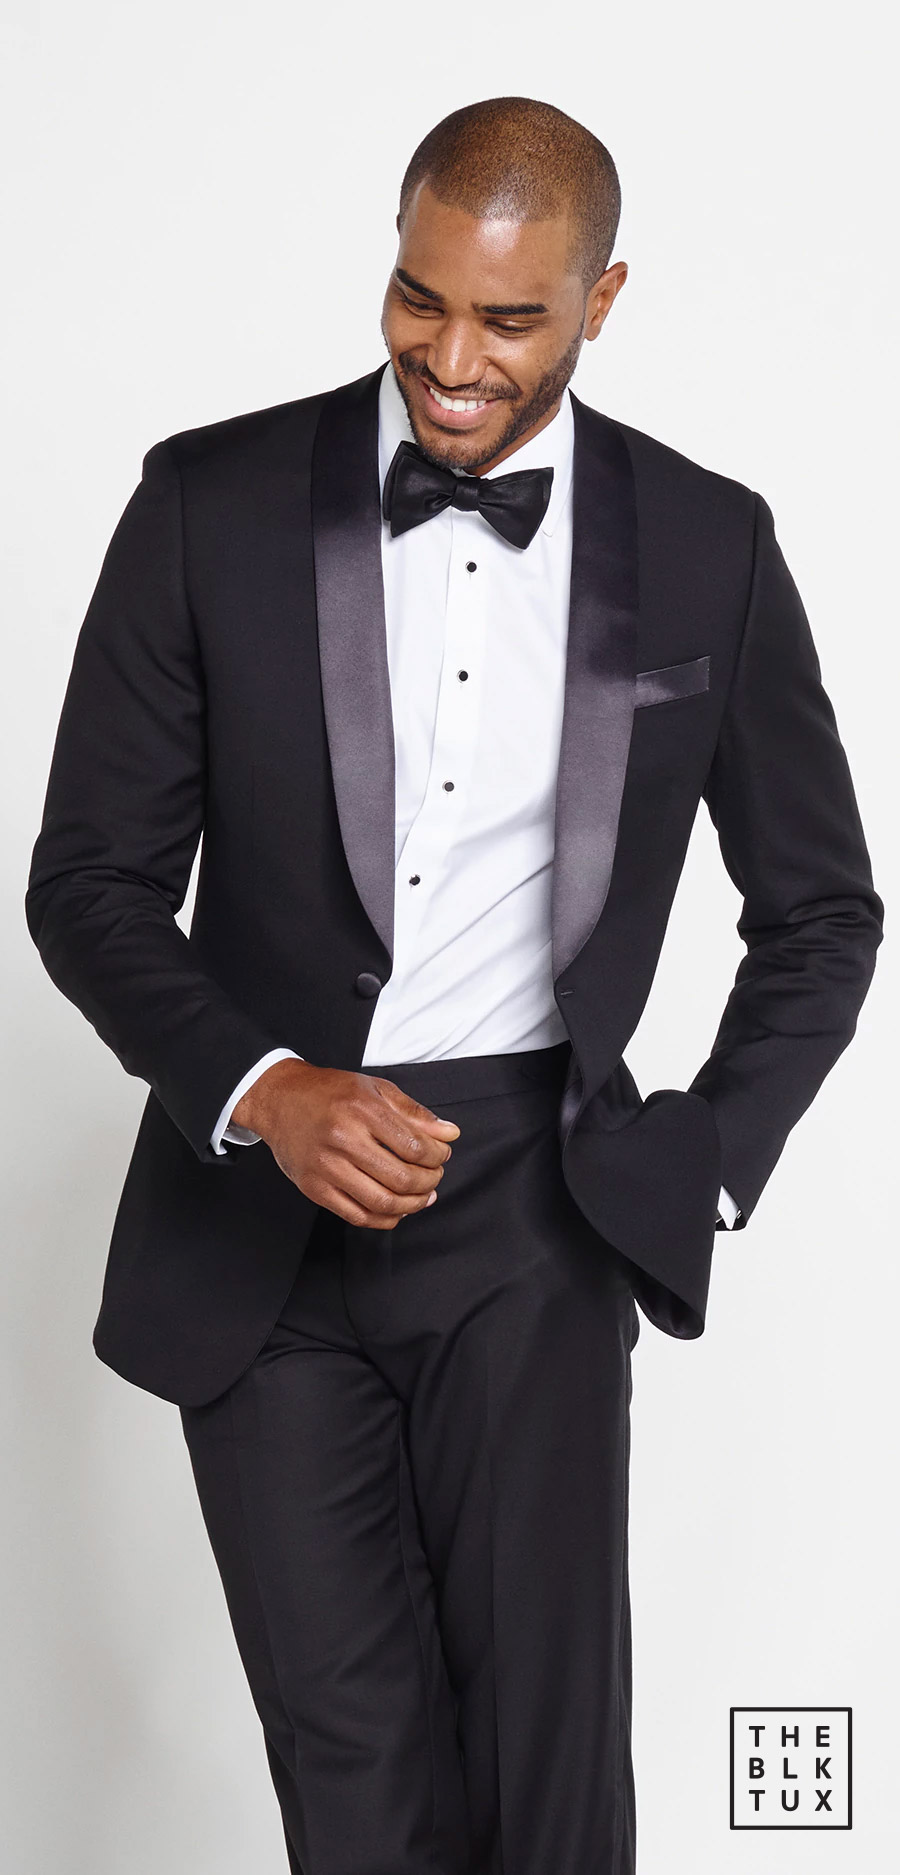 the black tux 2017 online tuxedos rental service the shawl collar tuxedo groommen best man style